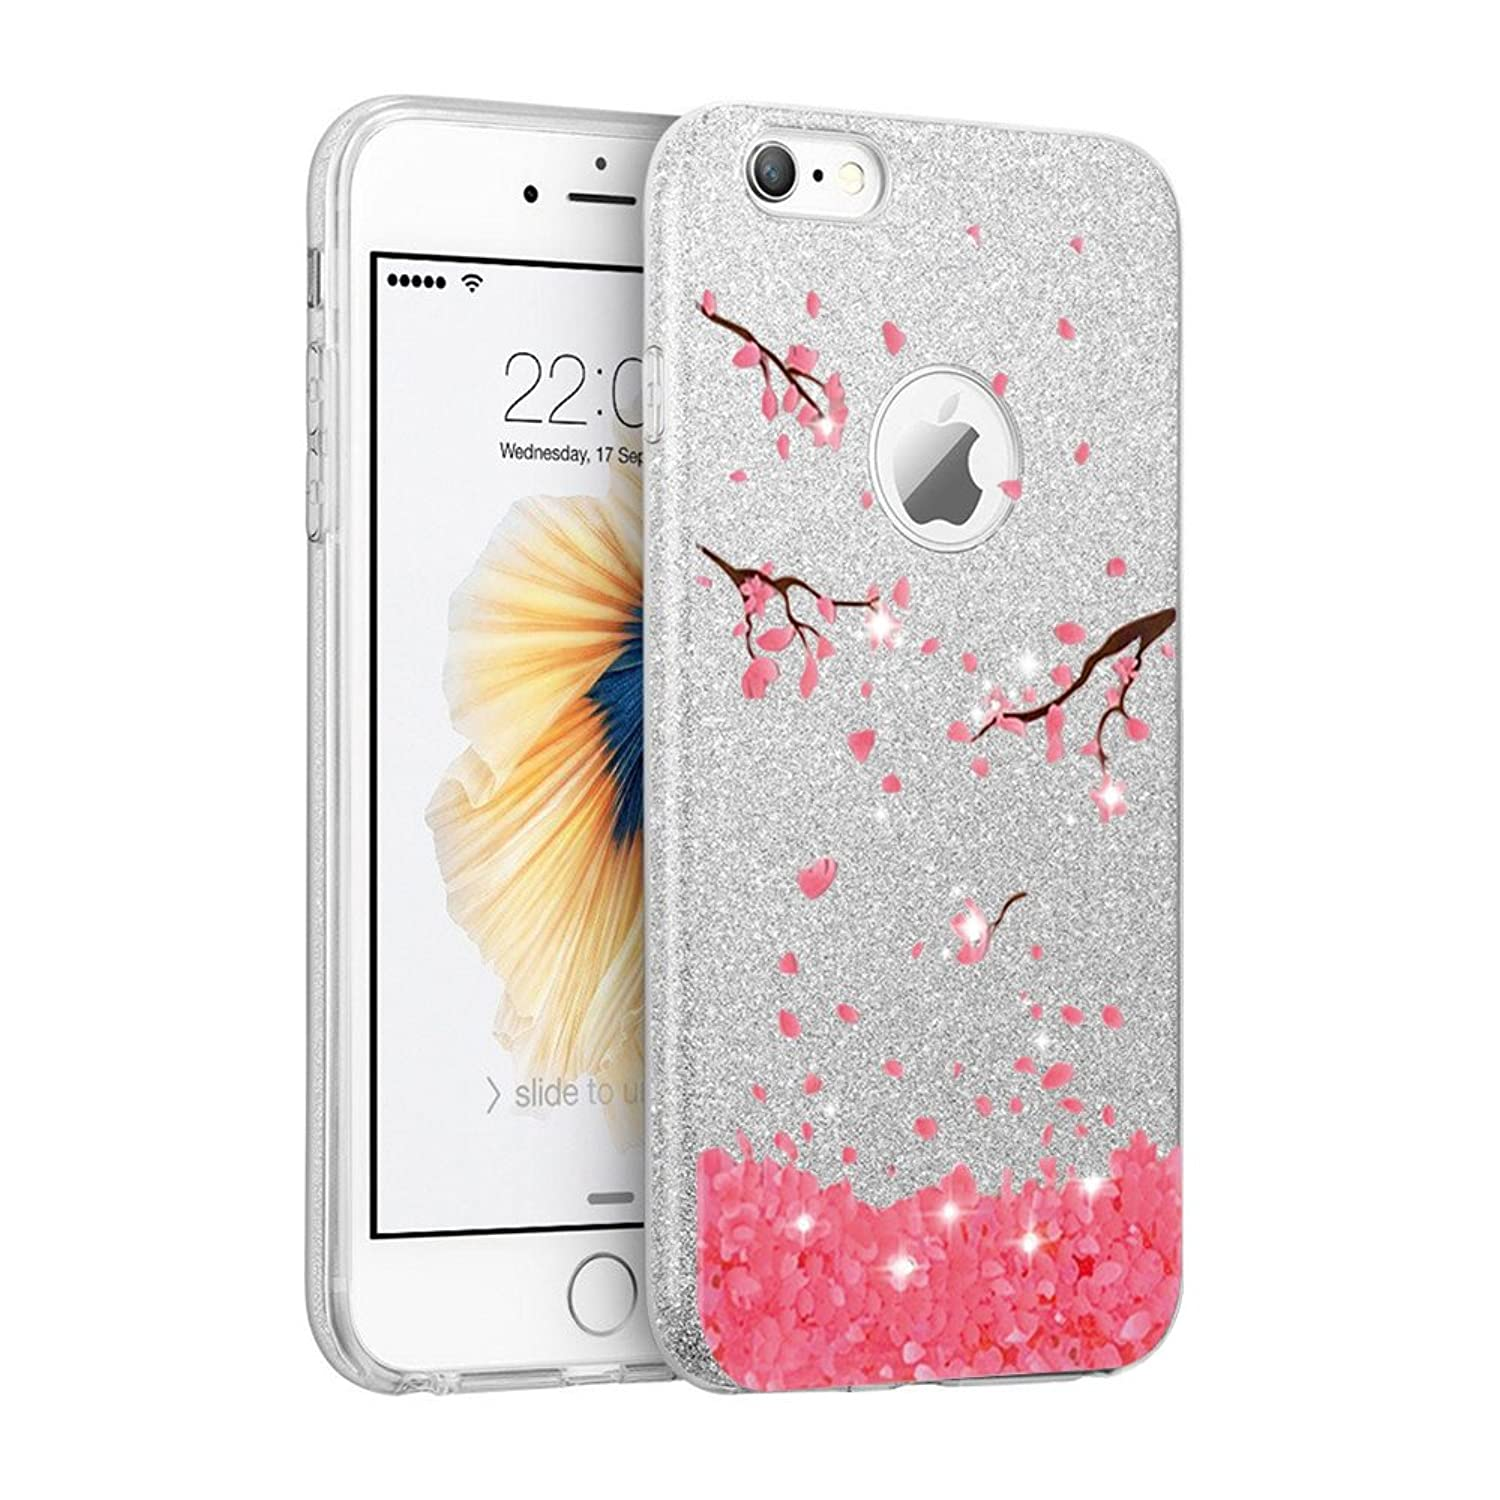 IPhone7 Plus Case, Bling Luxury Glitter Cover, Dual Layer Fashion Protective Soft Rubber Flexible Ultra light Slim Case for Apple iPhone8 Plus